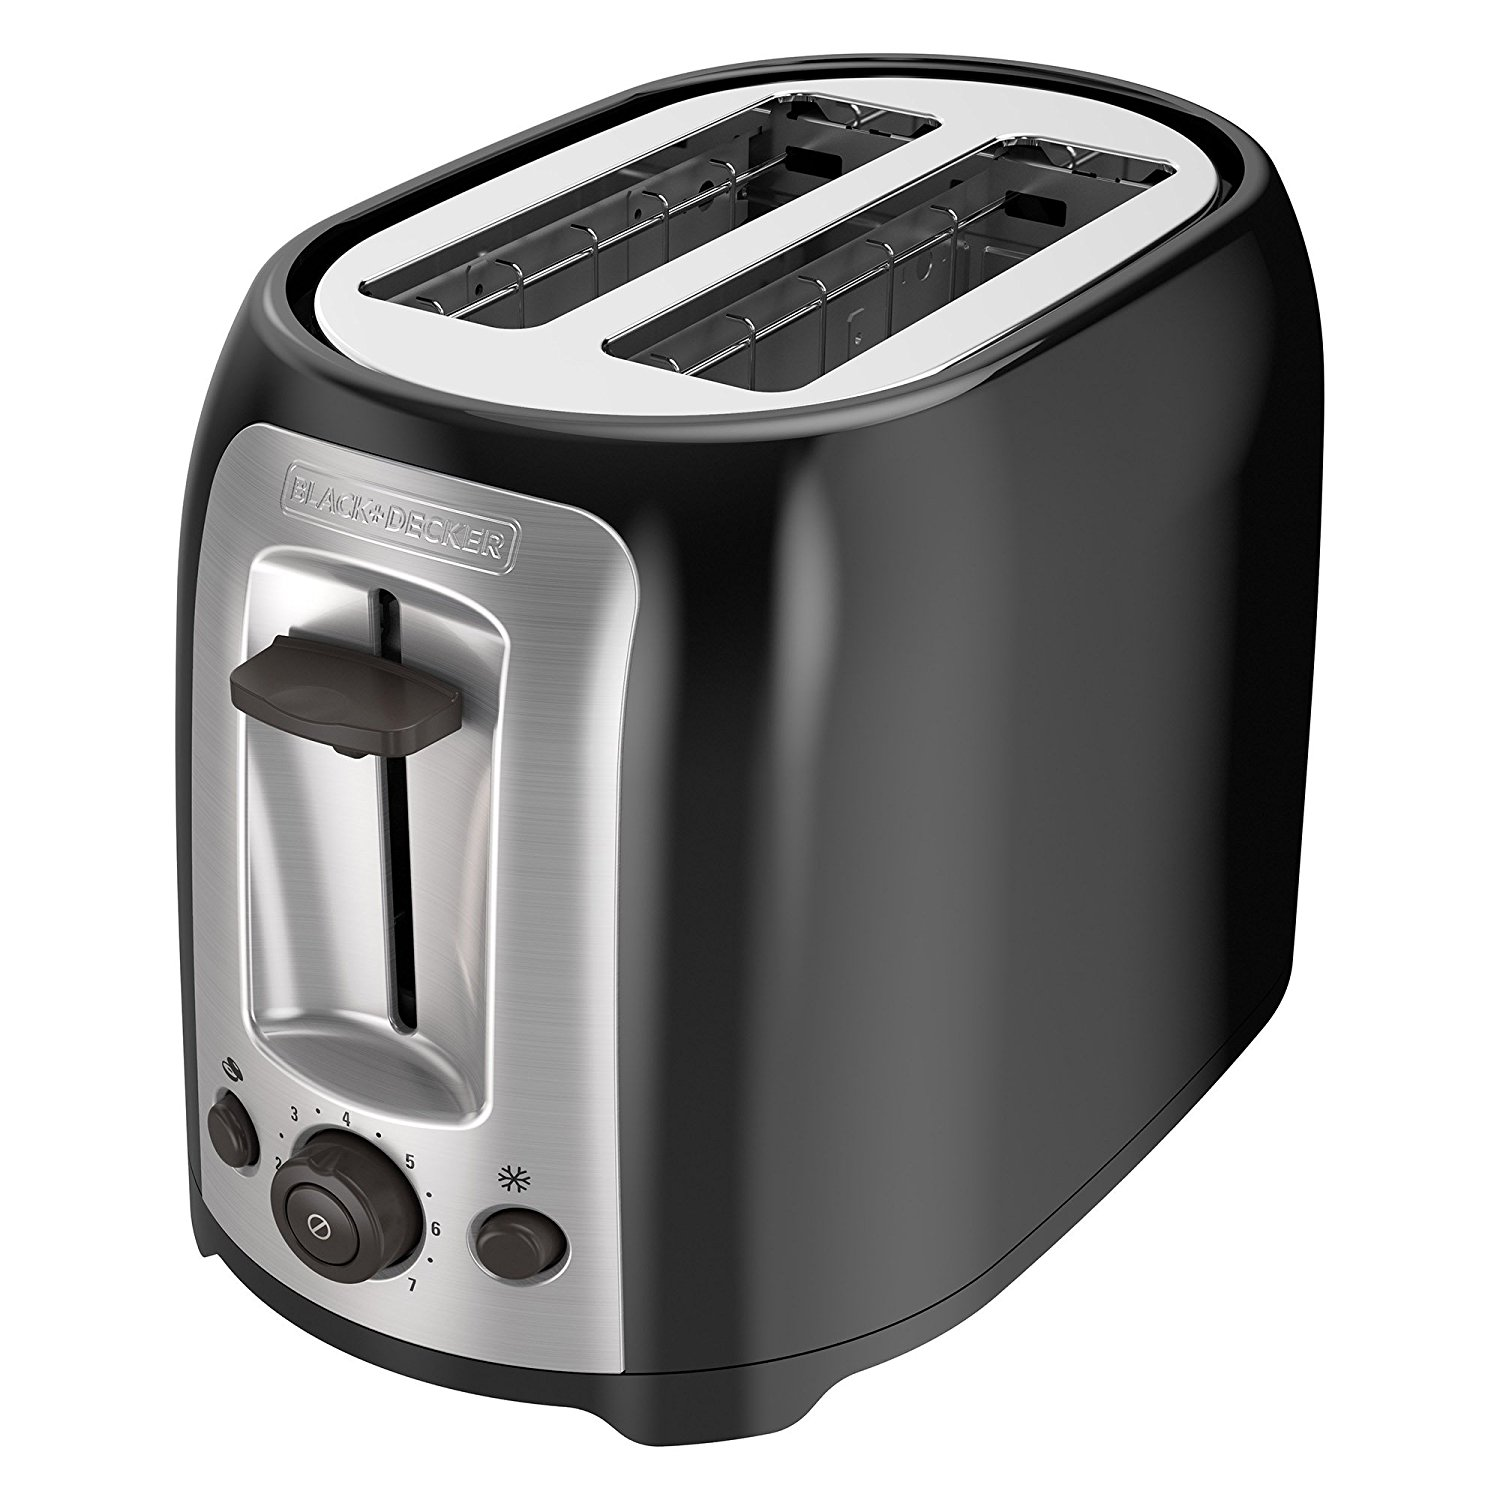 Best Rated Kitchen Appliances: Check Out On The Best Rated Toasters